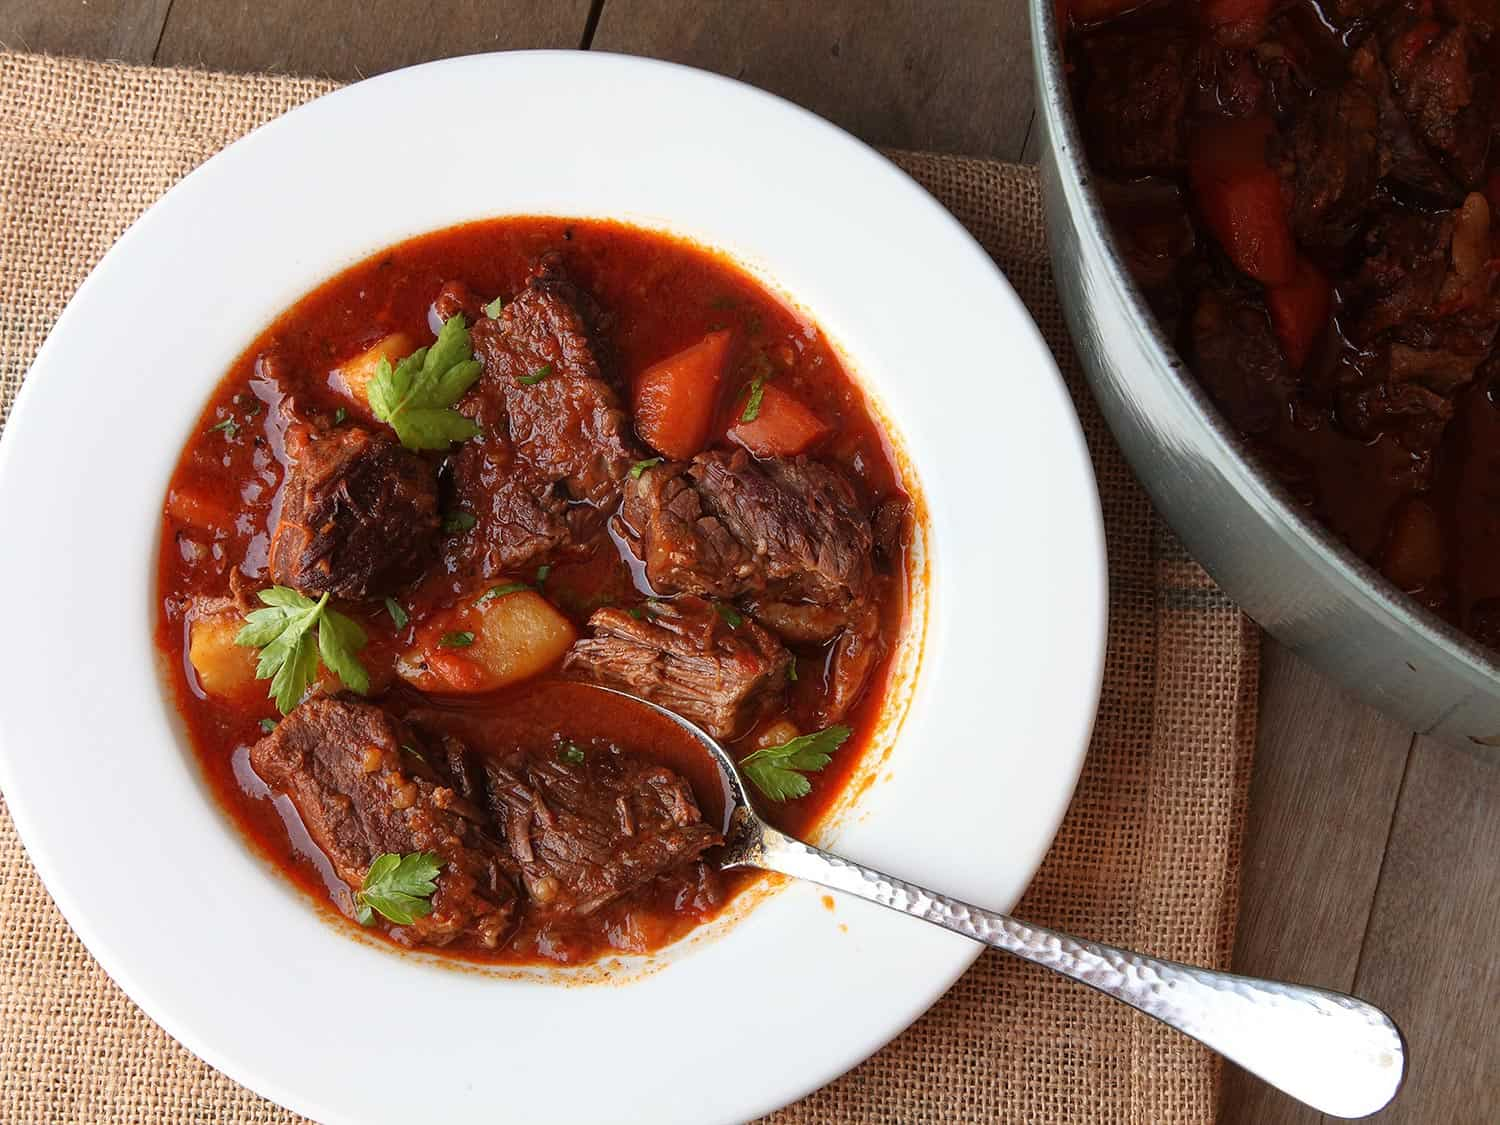 Hungarian goulash (beef stew with paprika)